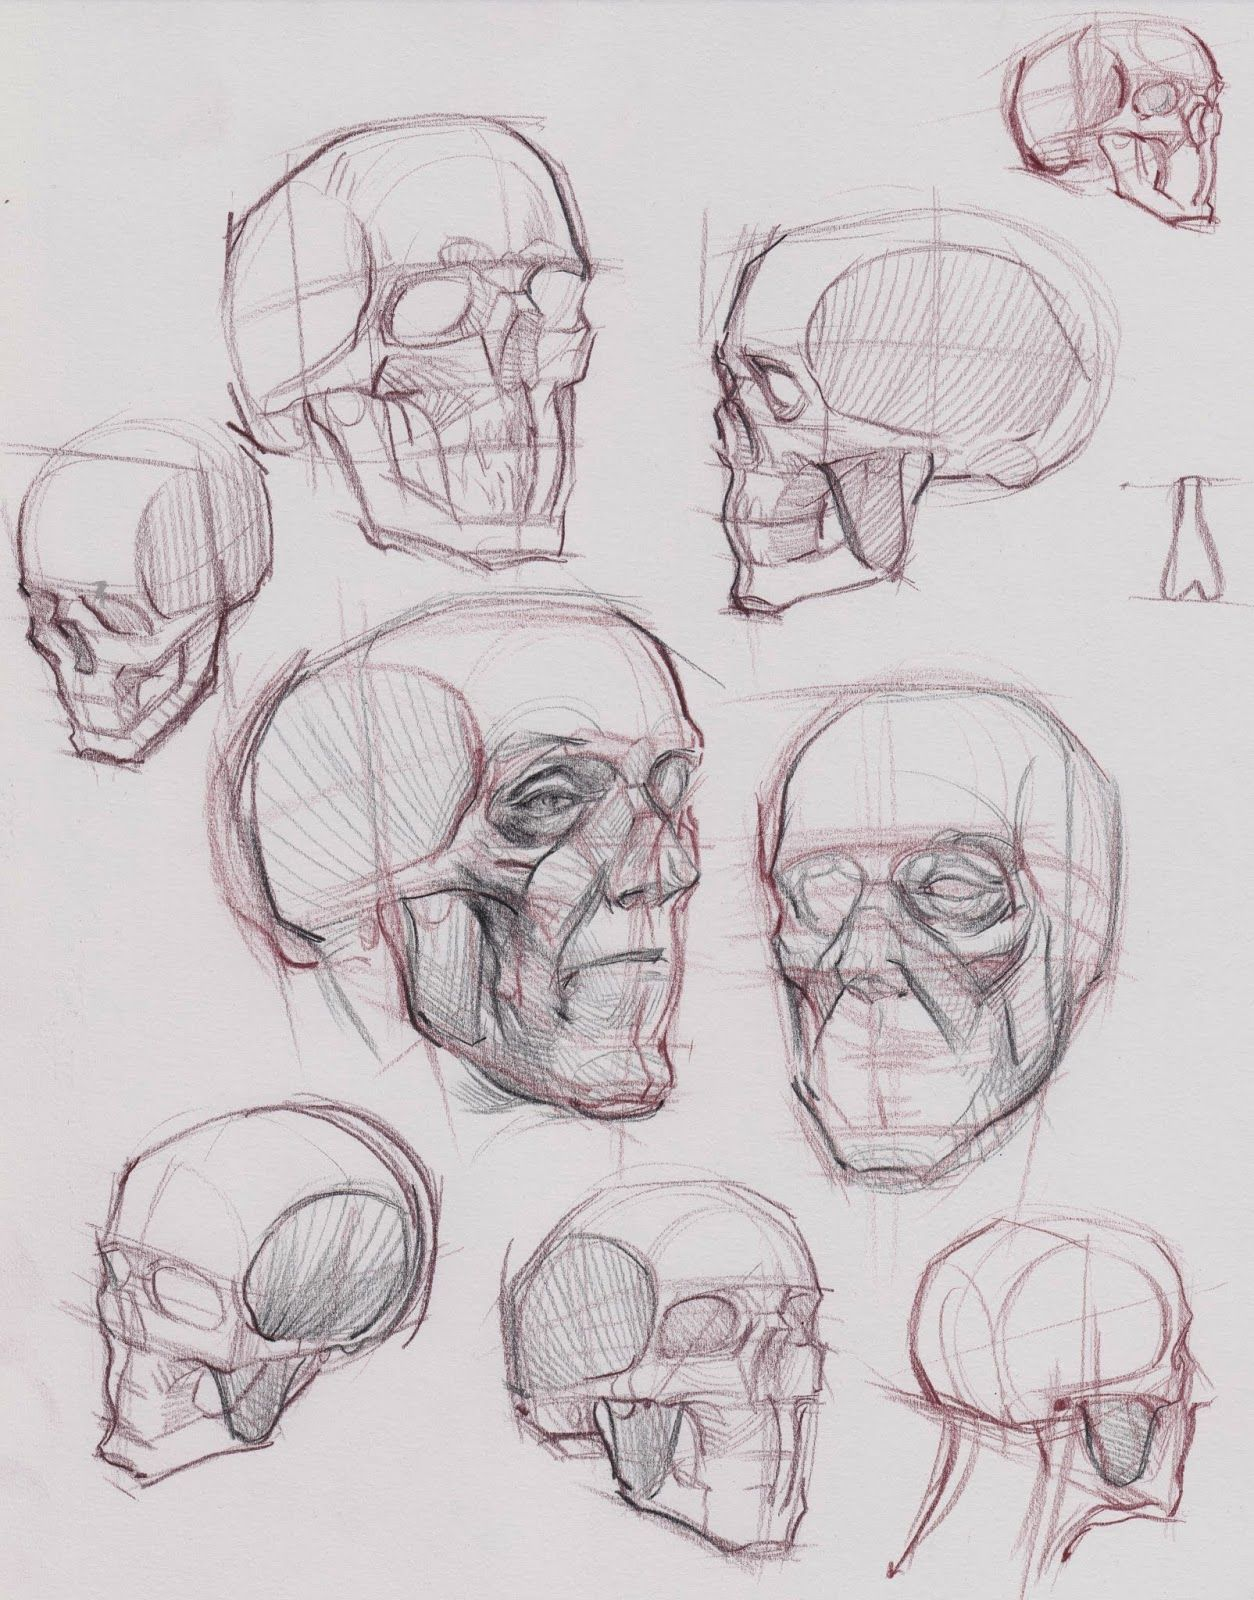 Skull invention by Michael Hampton | Anatomy Reference | Pinterest ...